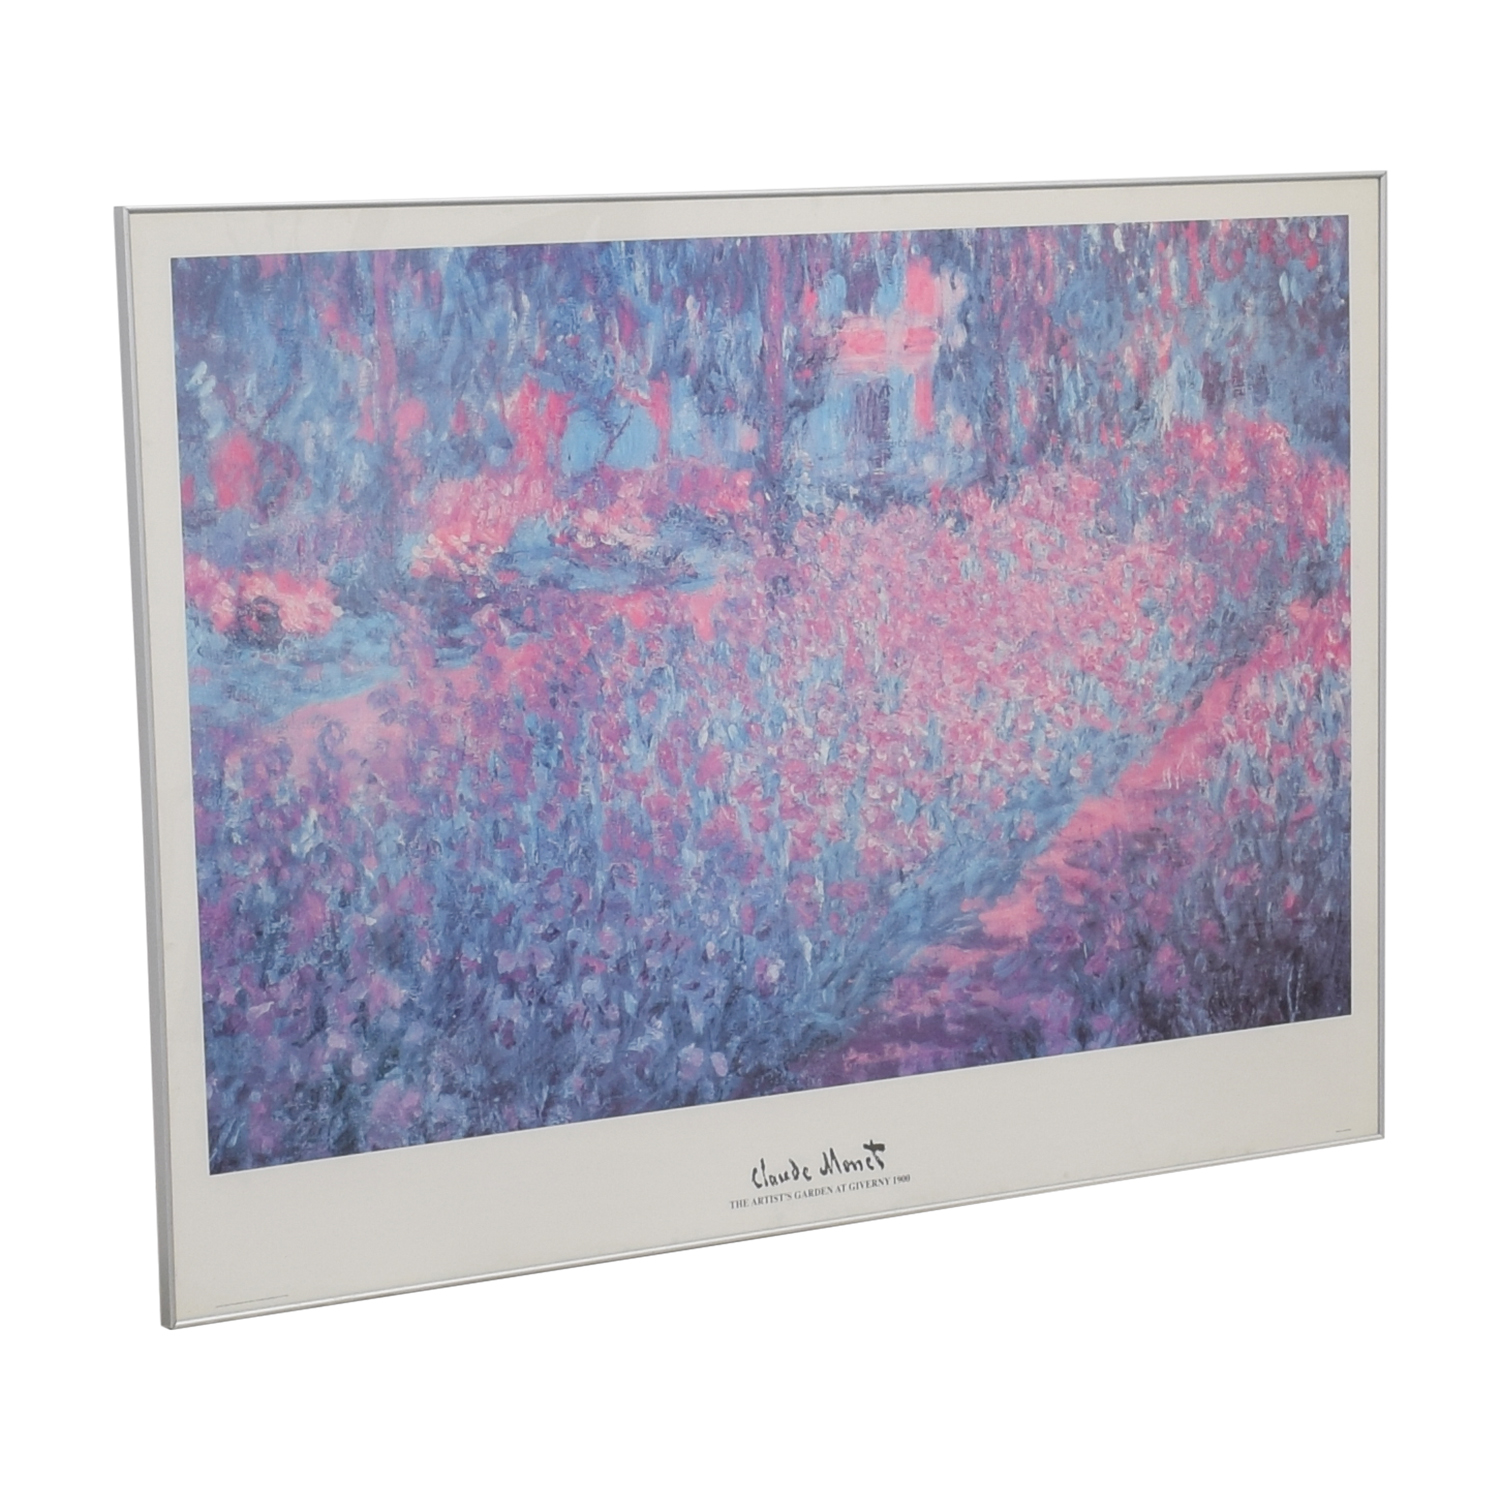 Claude Monet The Artist's Garden Poster nj